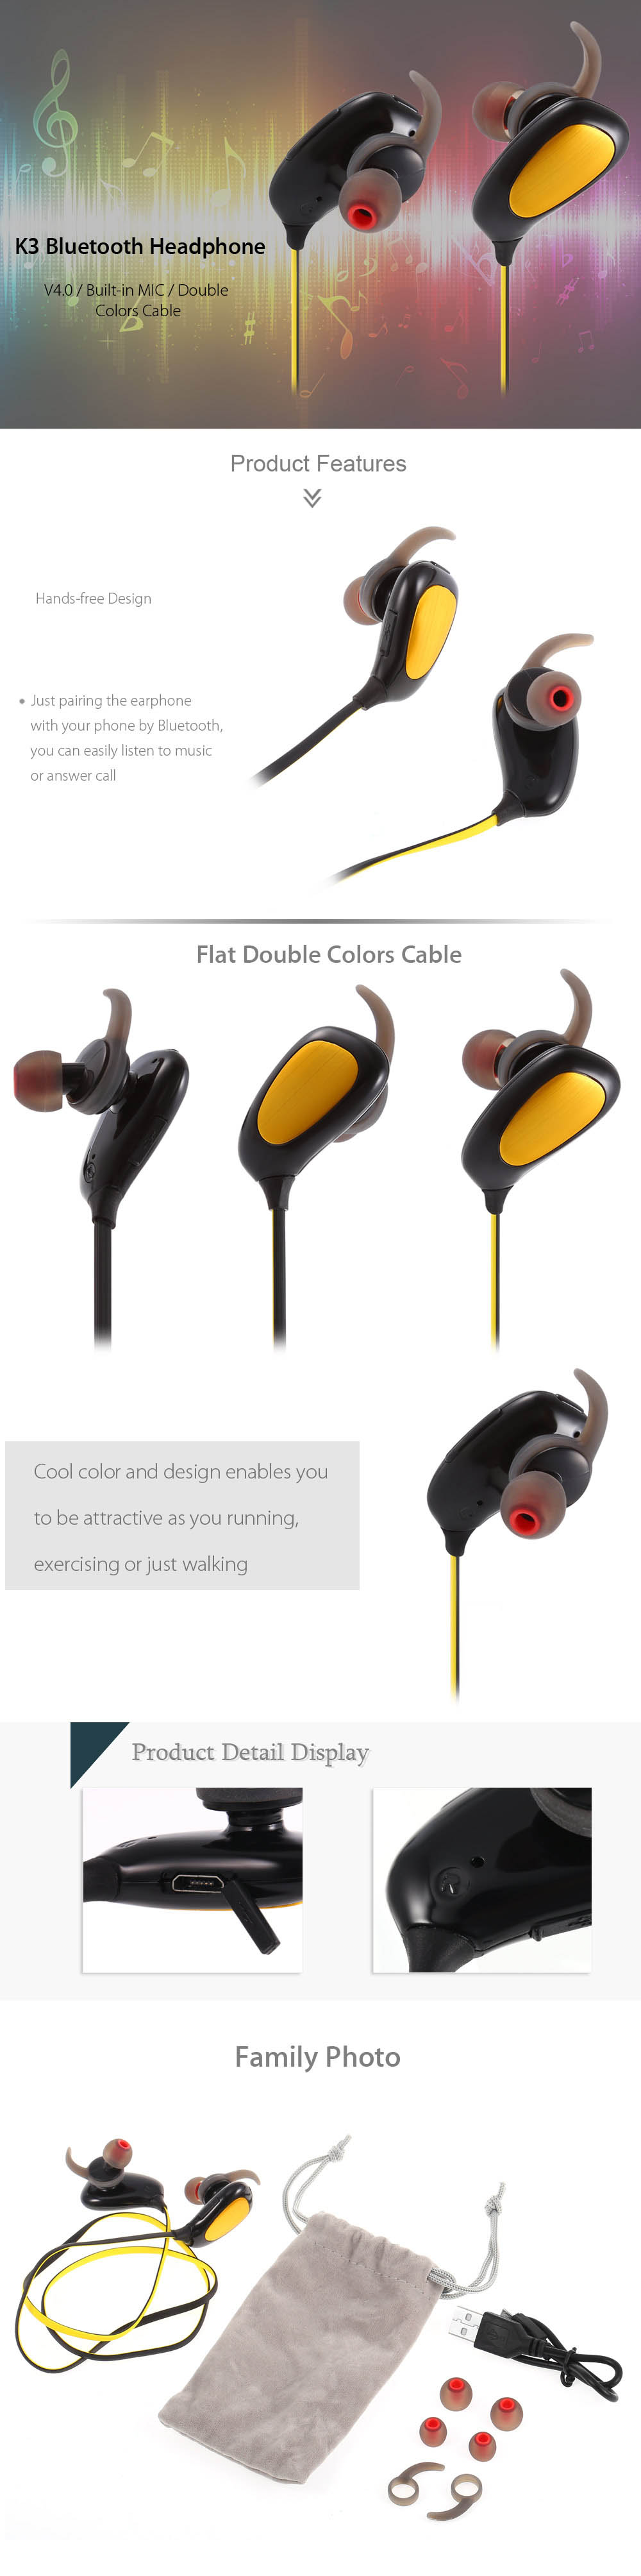 K3 Bluetooth V4.0 Sport Earbuds Double Colors Cable